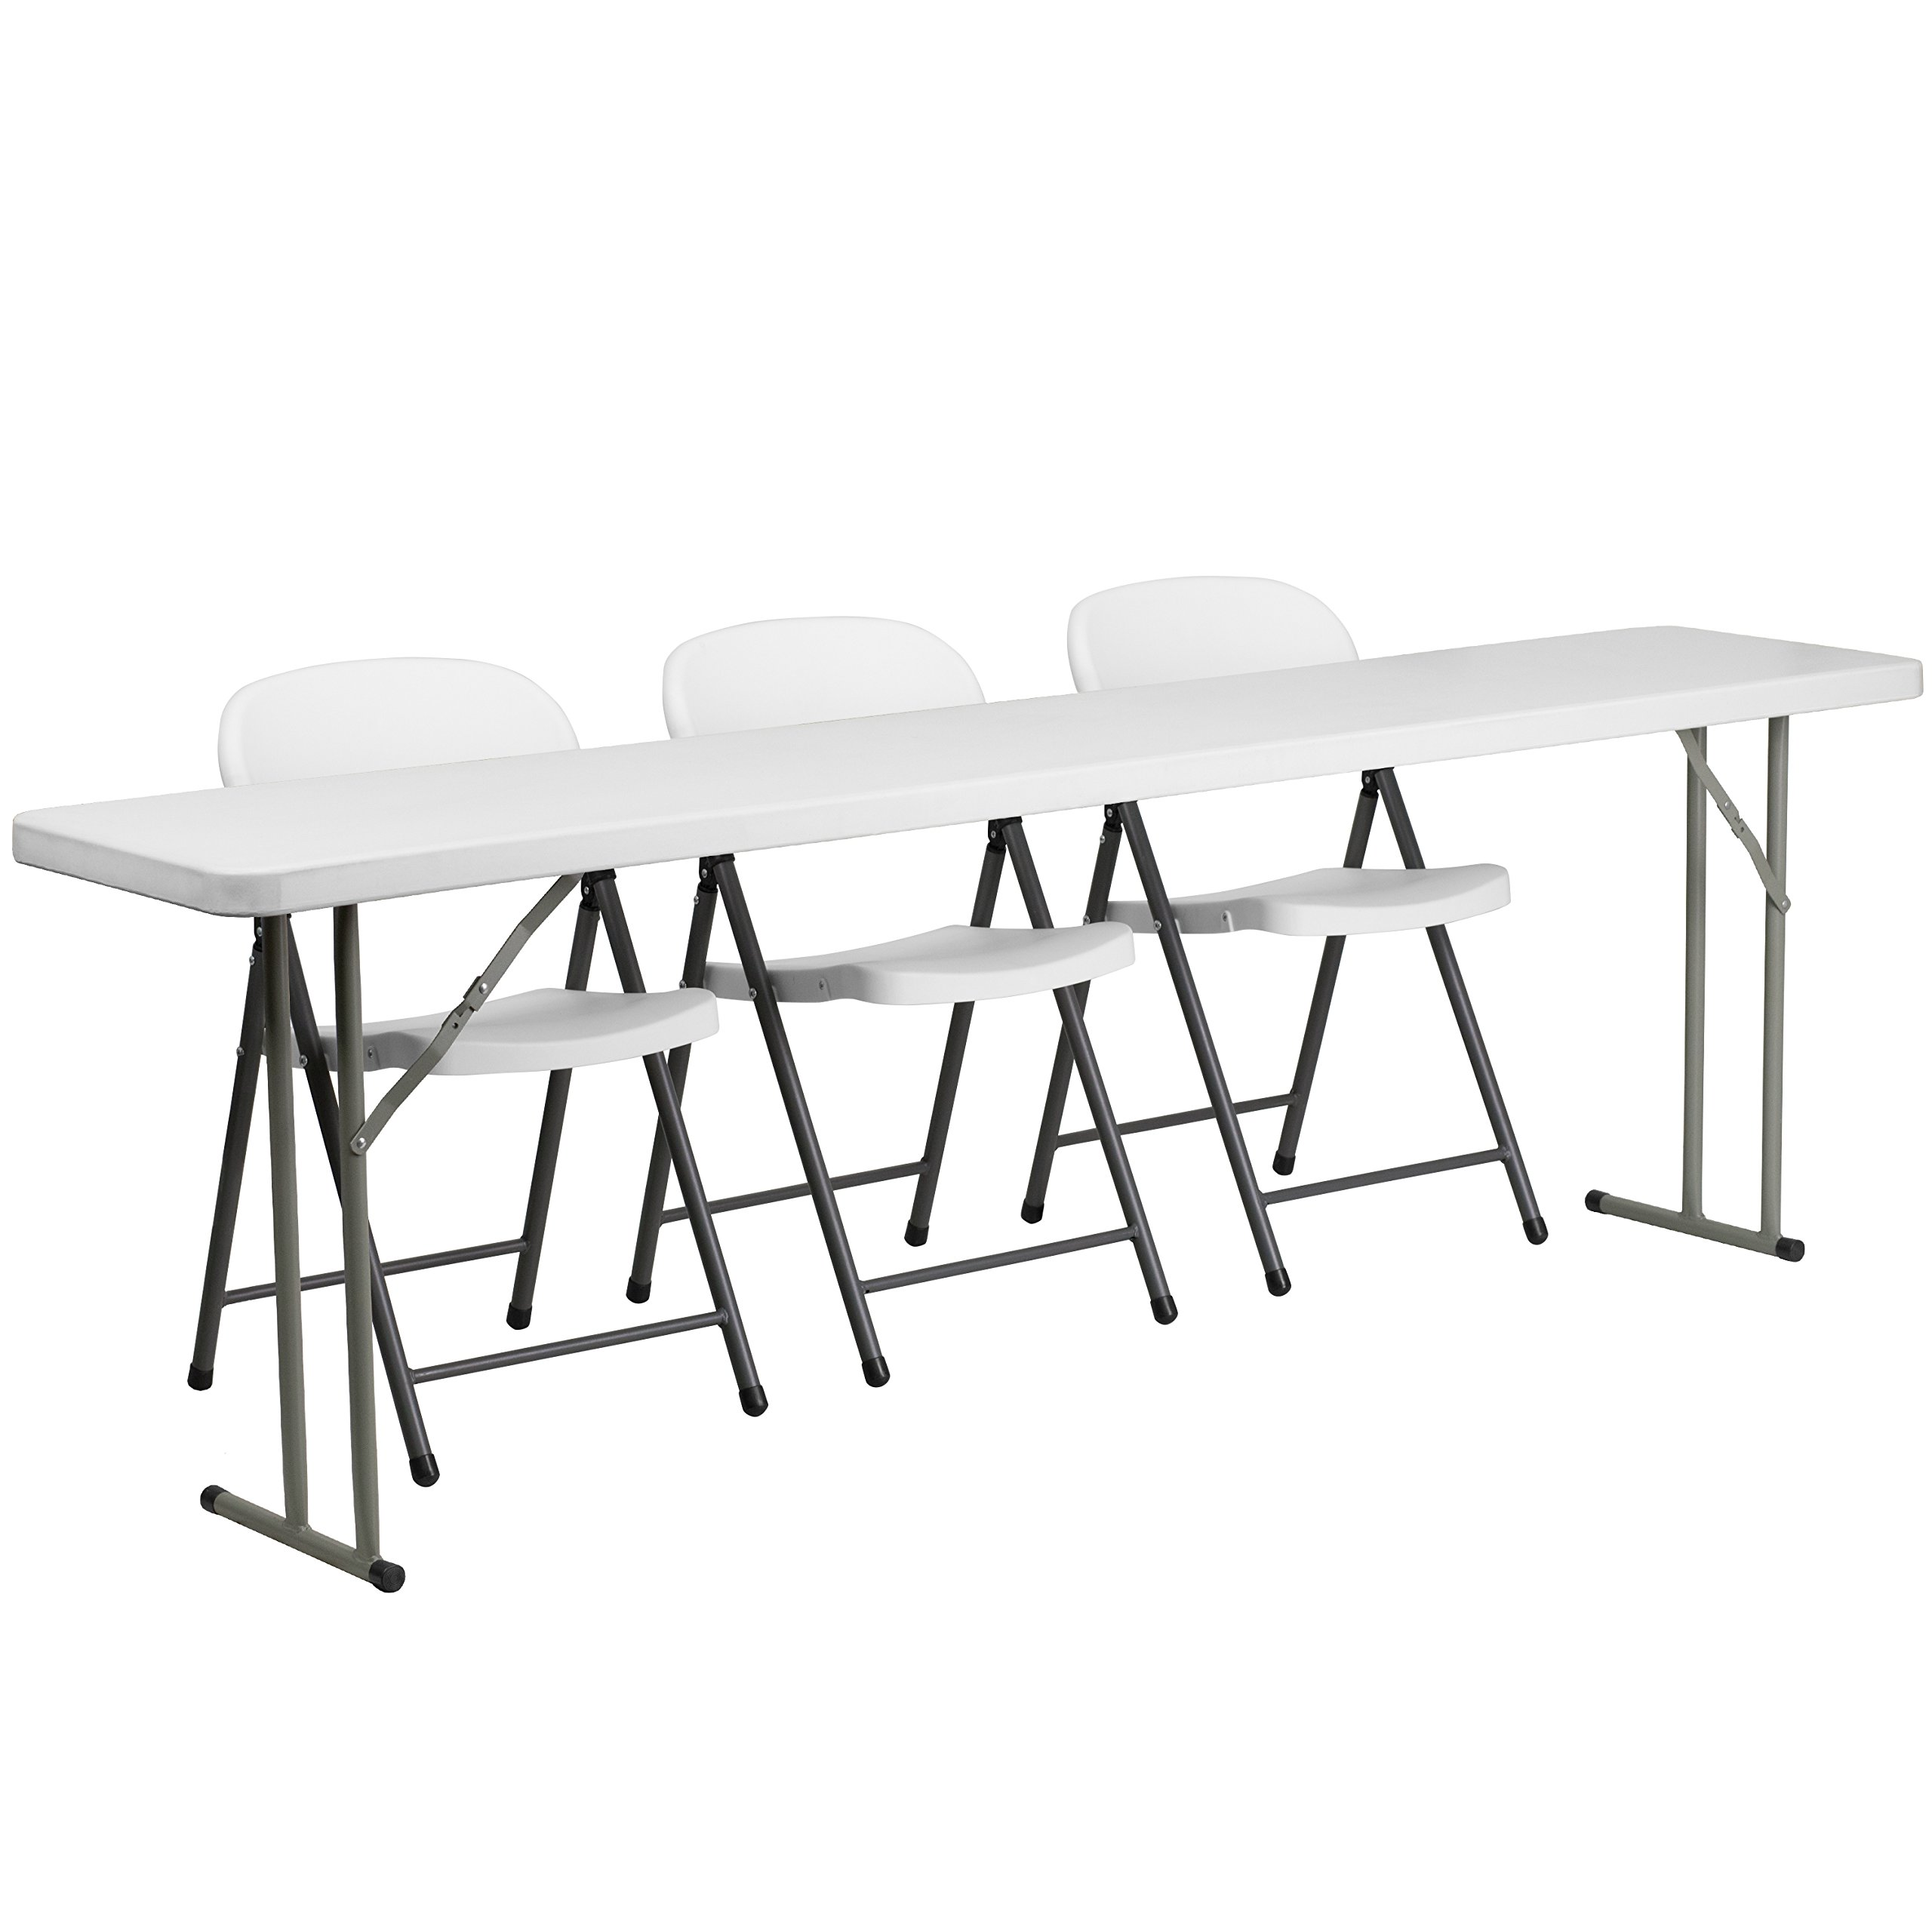 Flash Furniture 8-Foot Plastic Folding Training Table Set with 3 White Plastic Folding Chairs by Flash Furniture